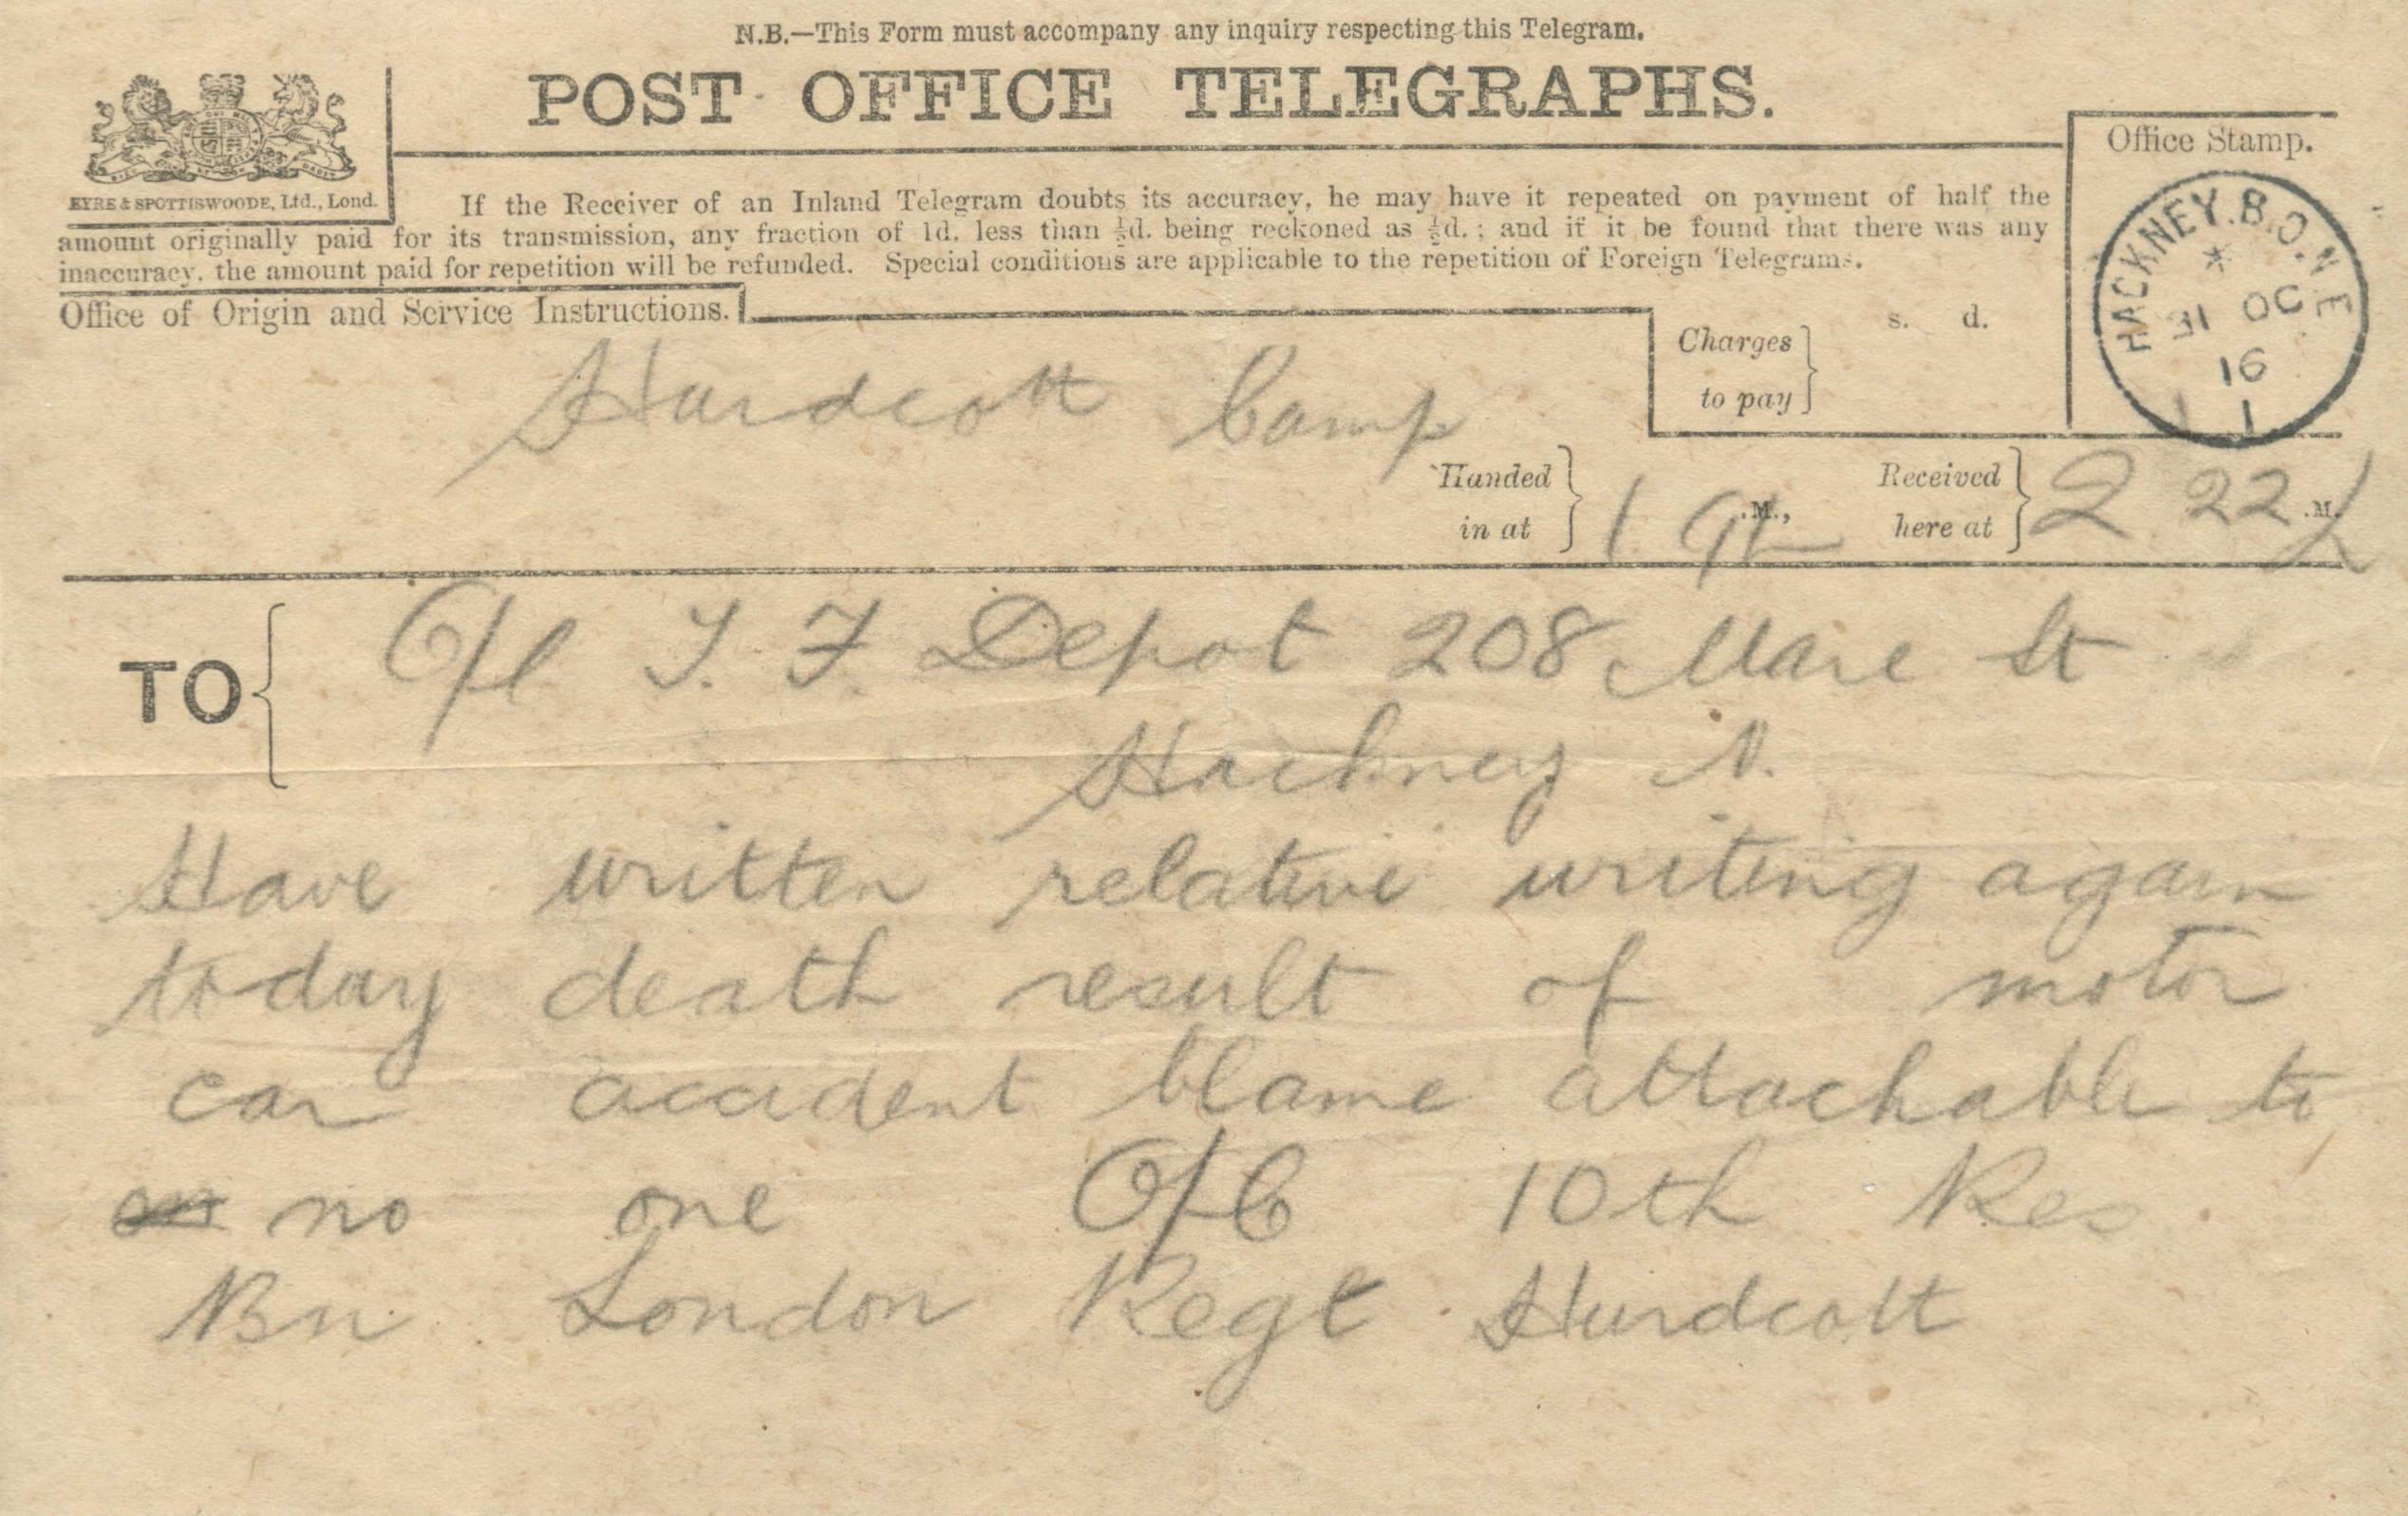 Edward Emsley - telegram